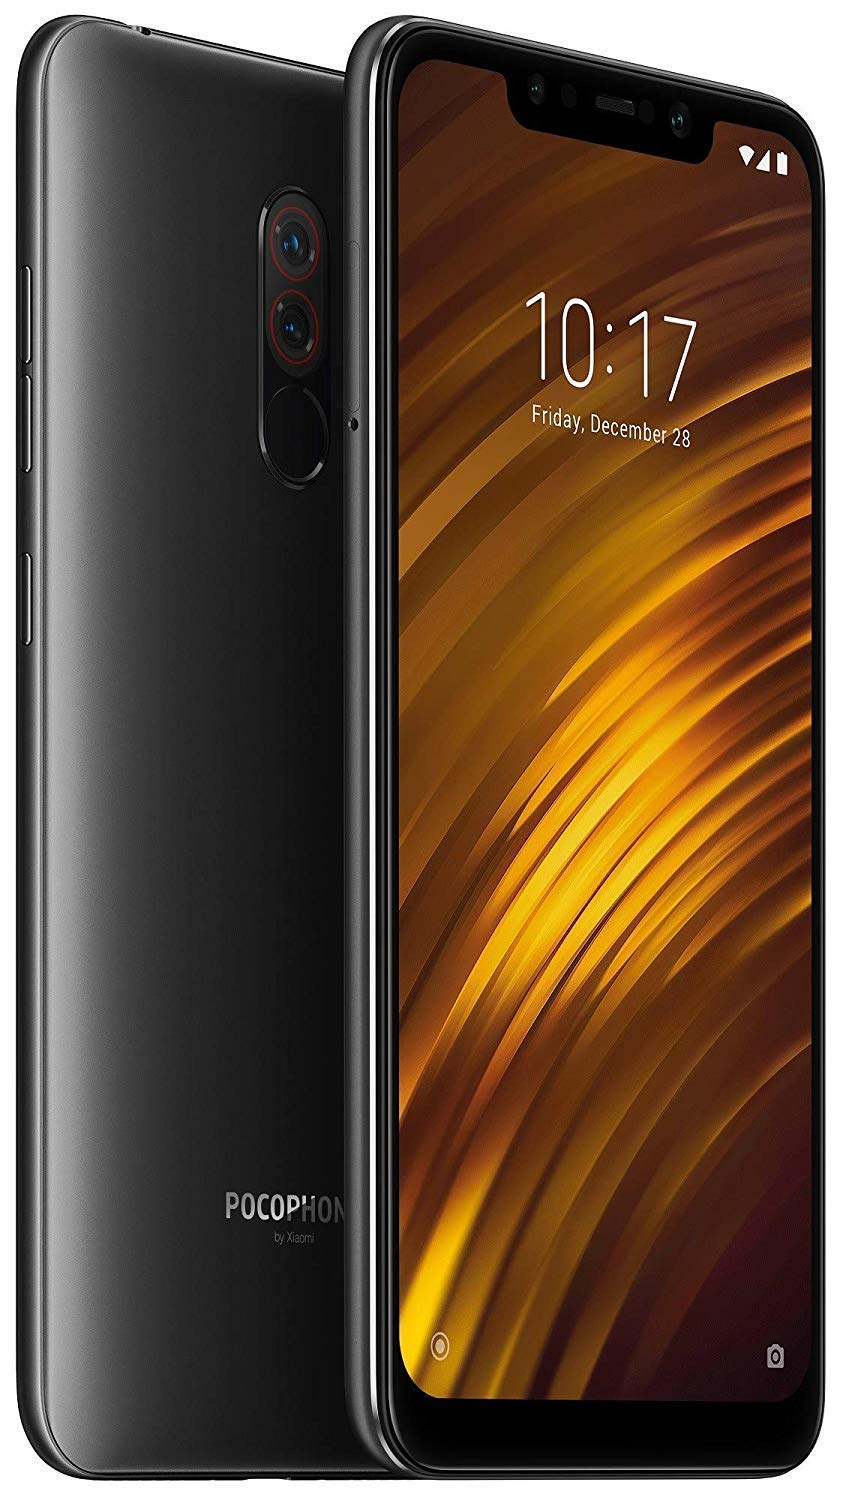 POCOPHONE F1 by Xiaomi - 6GB RAM and 64GB Storage (Dual Sim) - UK Sim-Free  Smartphone - 6 18-Inch Android 8 1 Oreo with - Graphite Black (Official UK